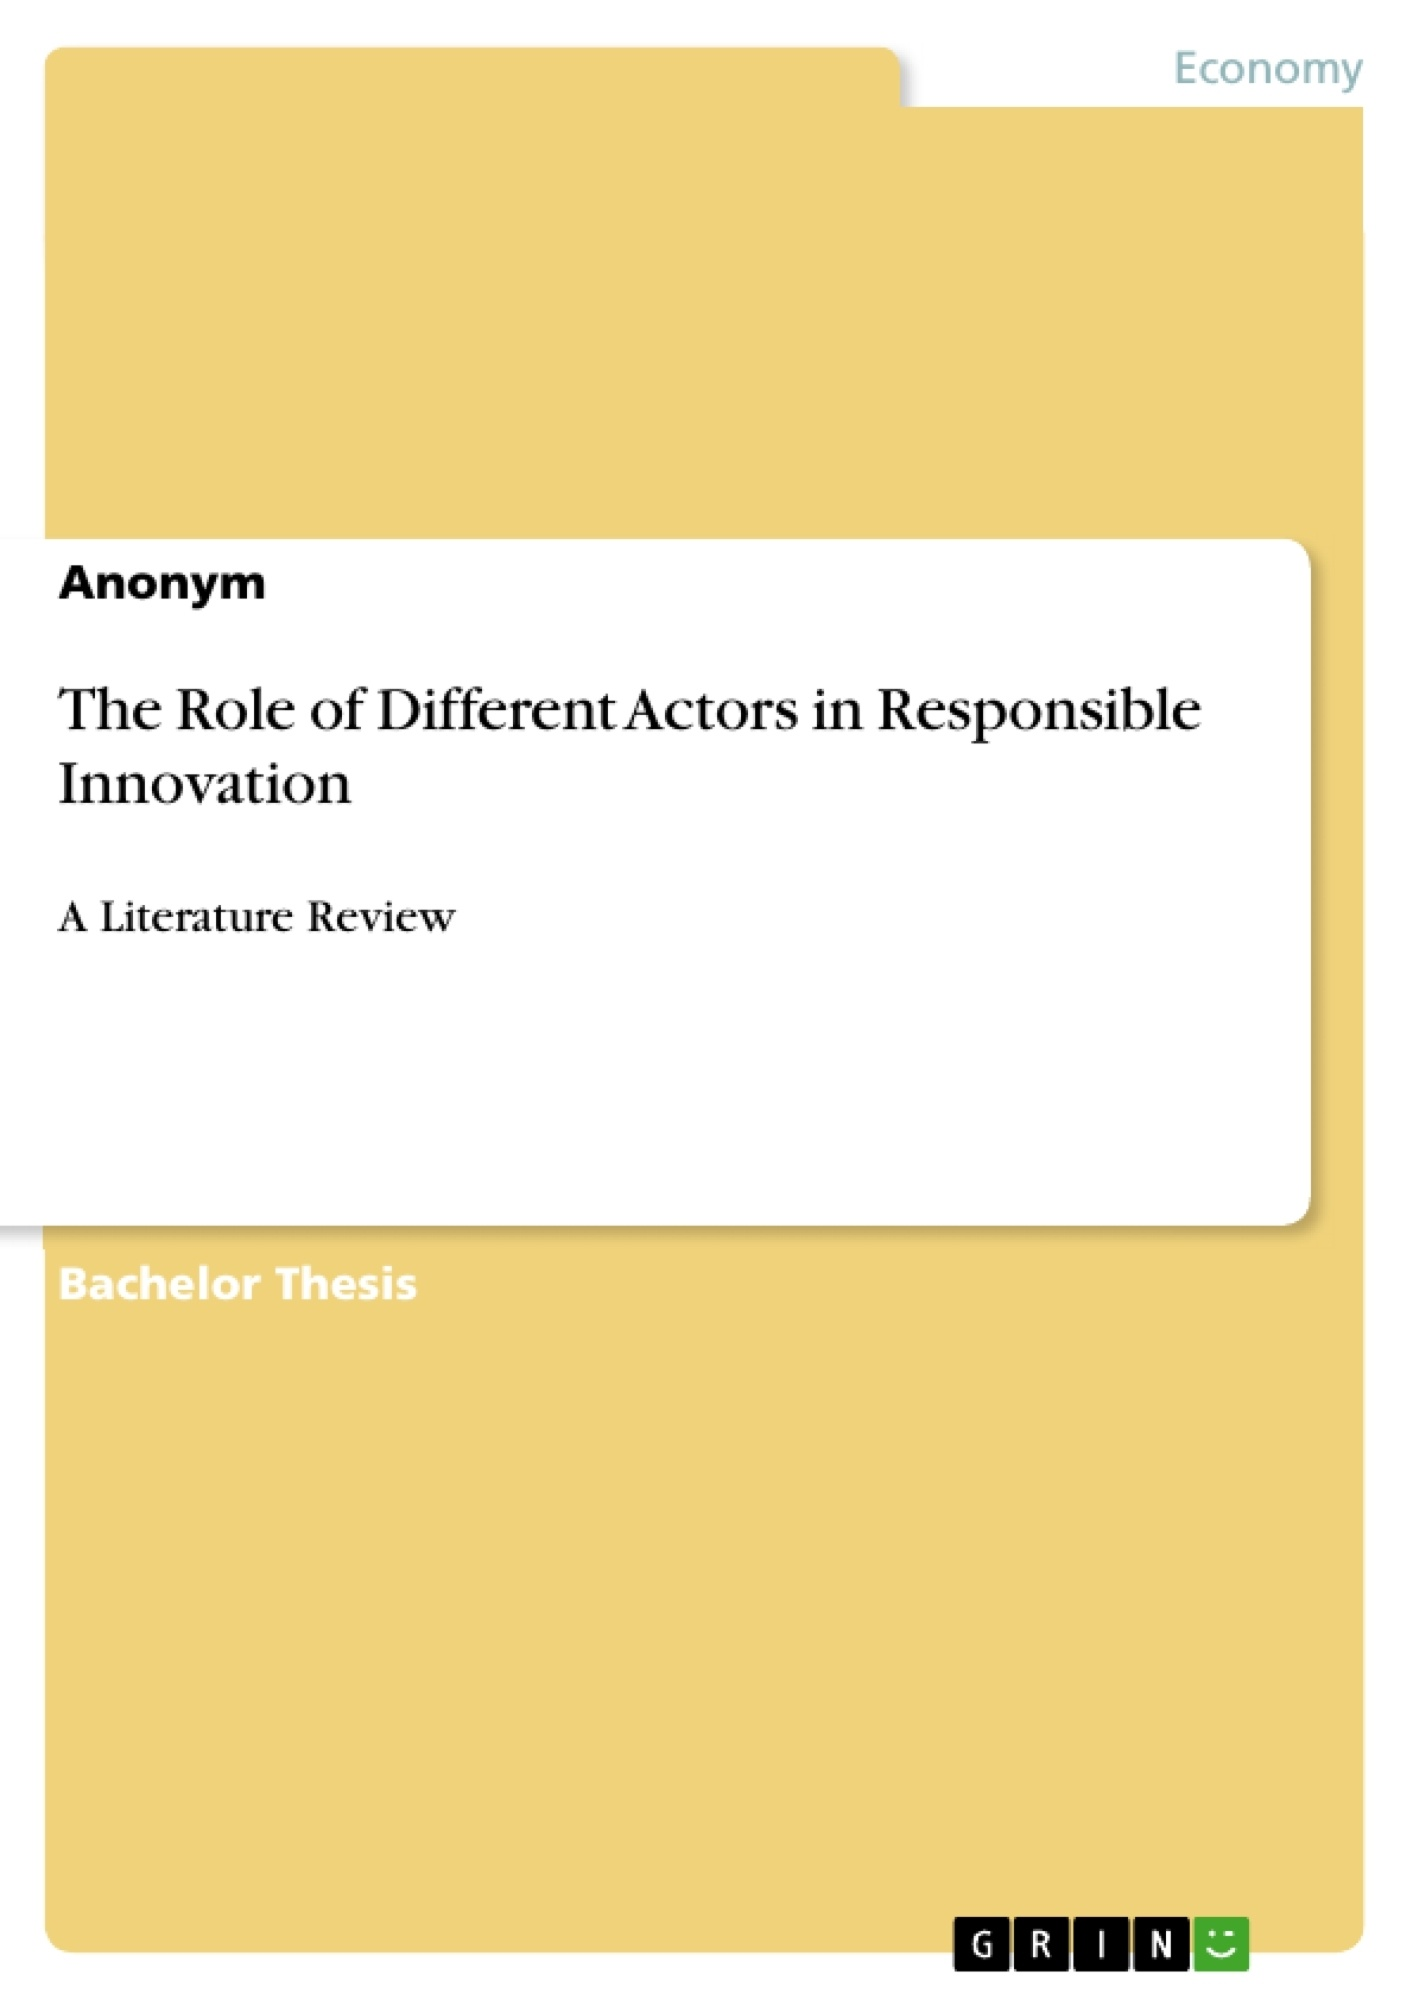 Title: The Role of Different Actors in Responsible Innovation